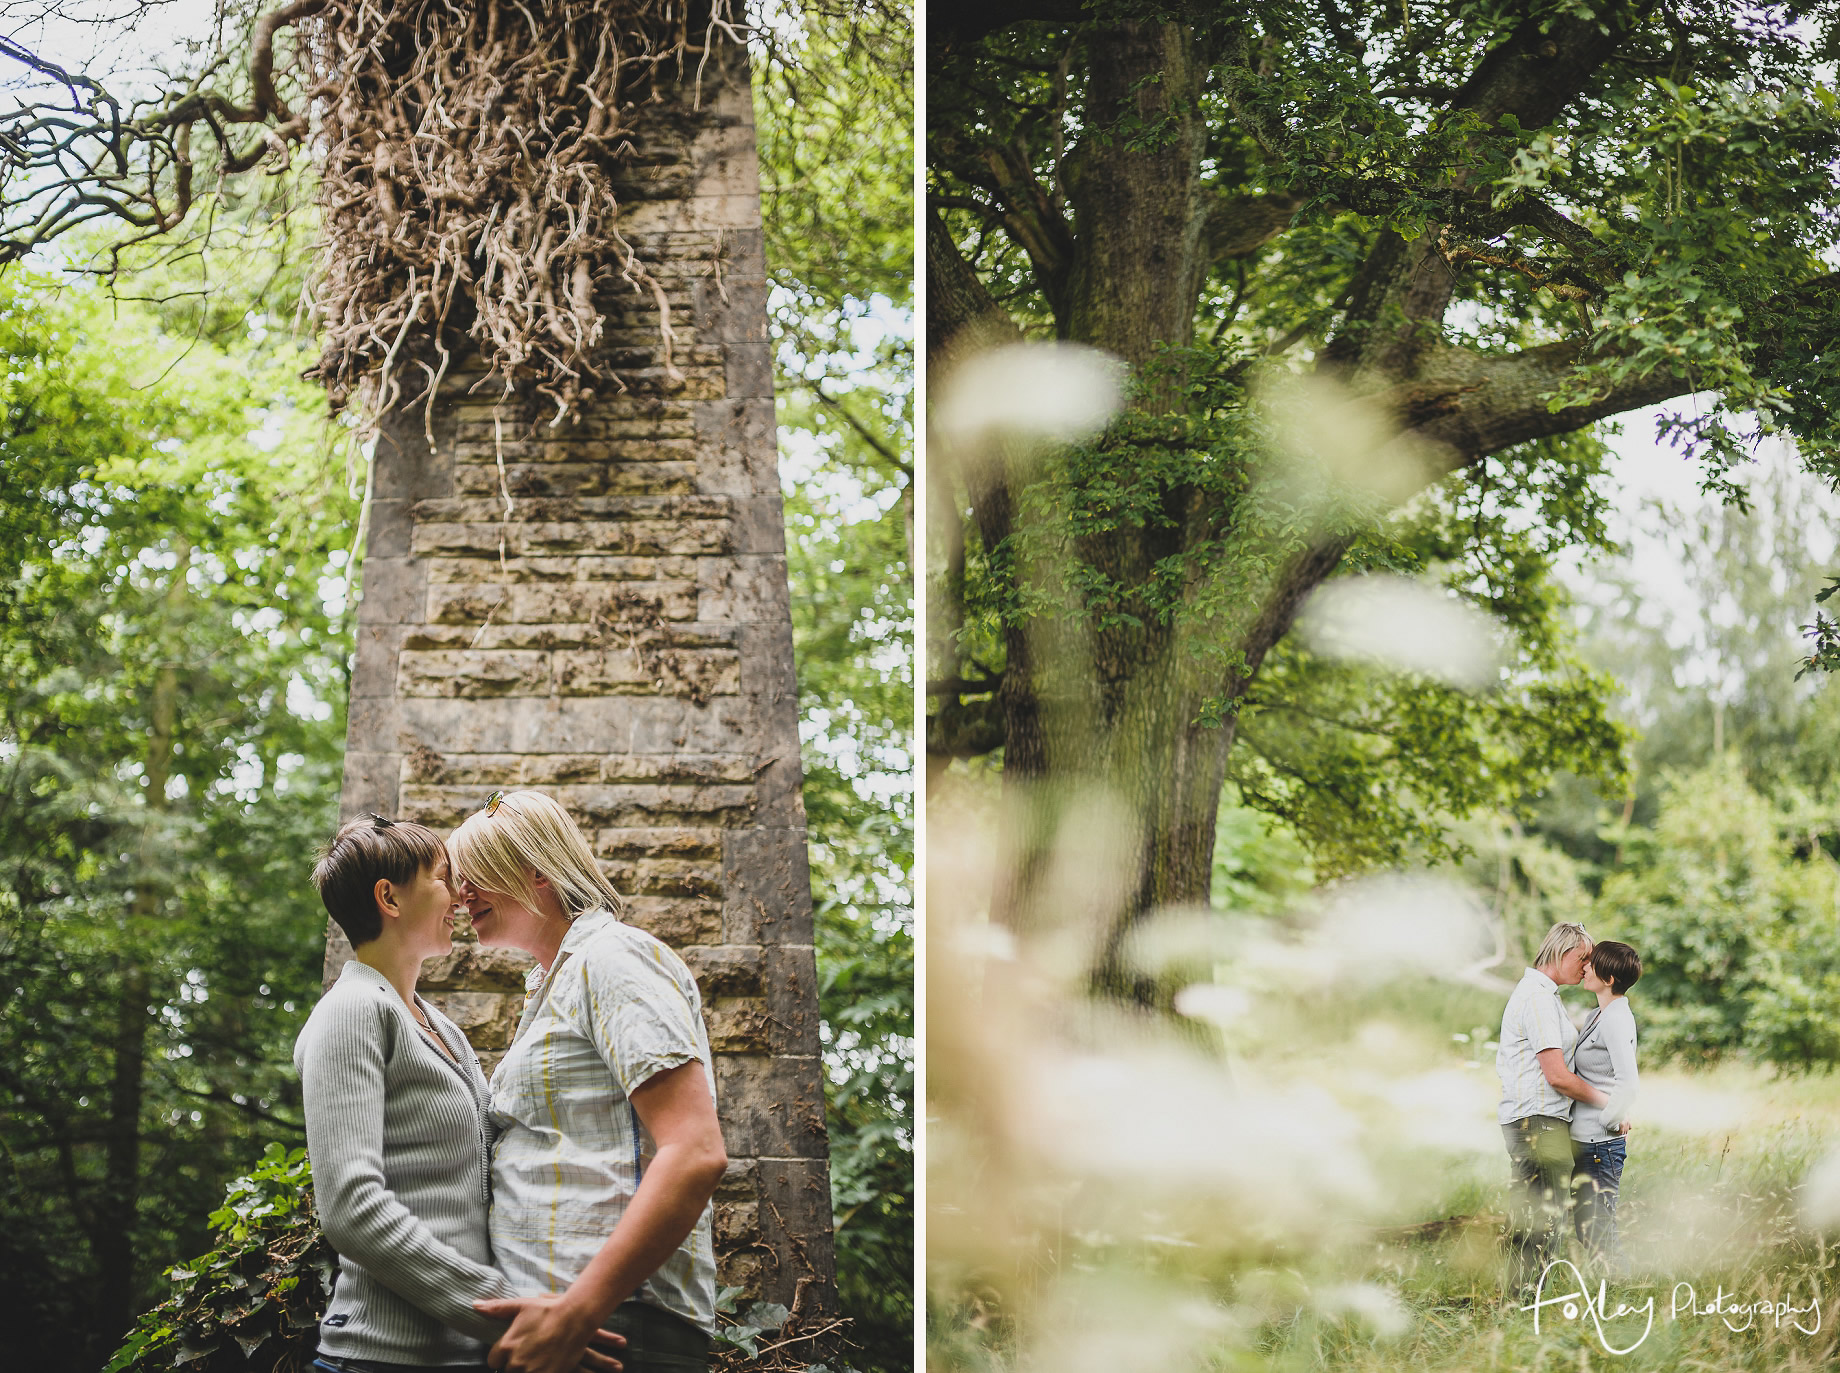 Becky-and-Amy-Pre-Wedding-Portraits-at-Denzell-Gardens-002